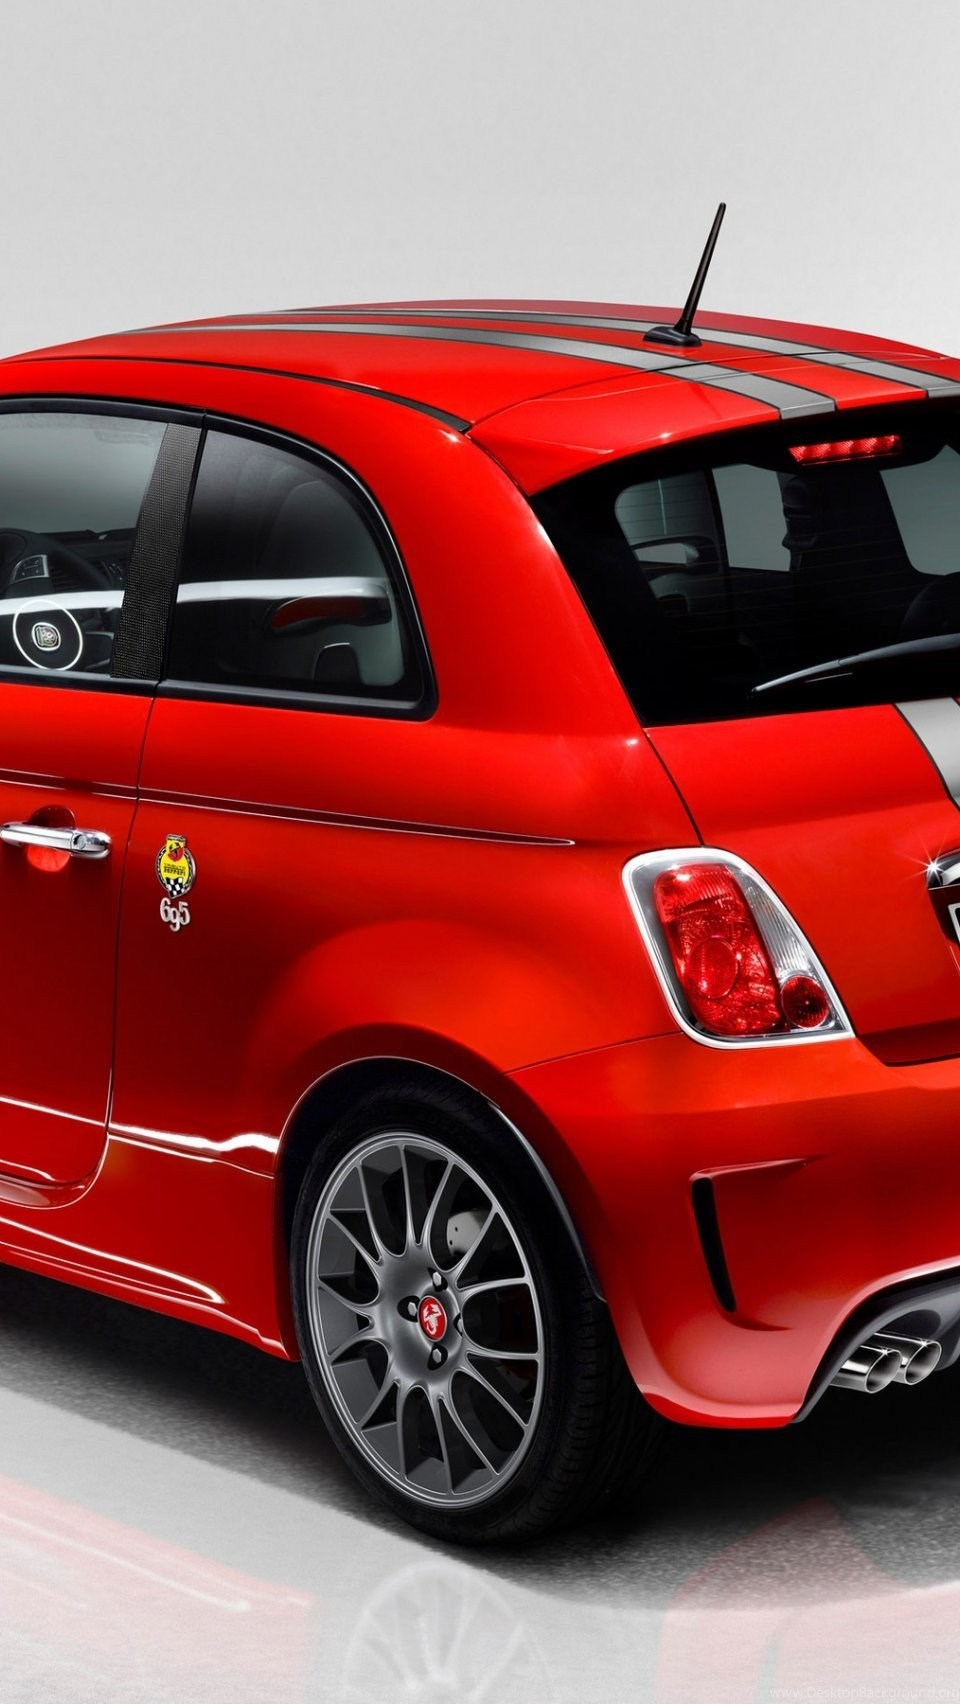 Fiat 500 Abarth 695 Tributo Ferrari H Iphone 6 Wallpapers